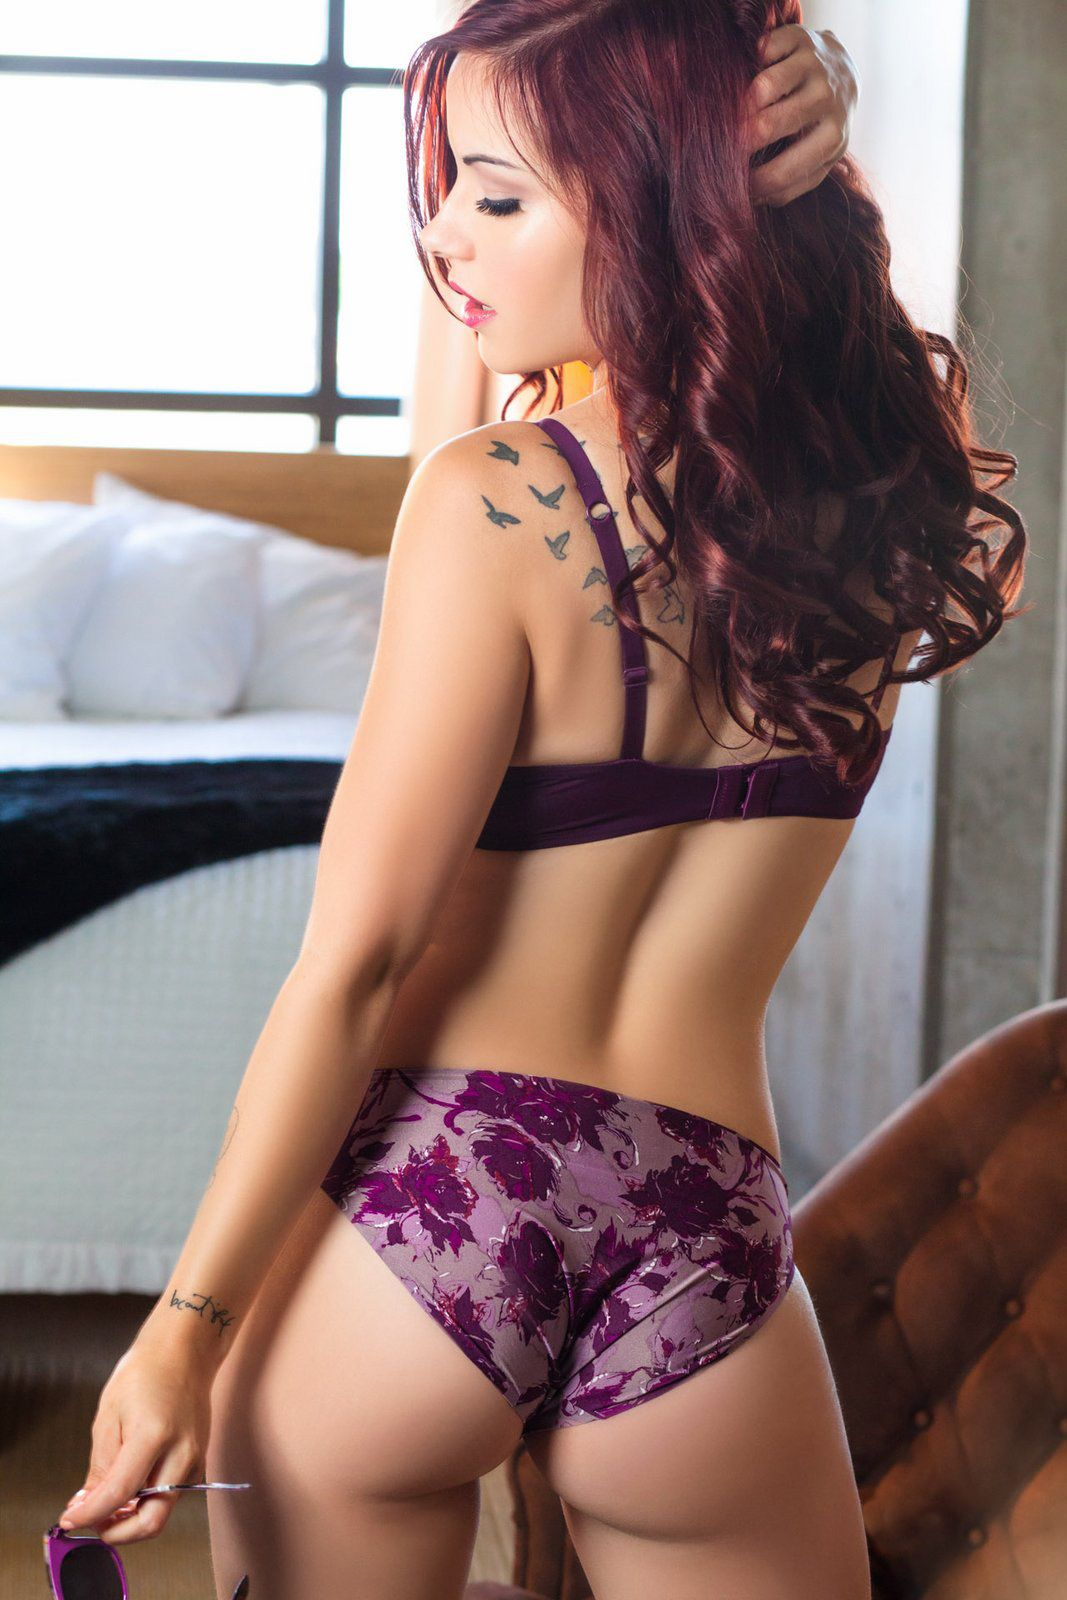 And hot lingerie ass Purple